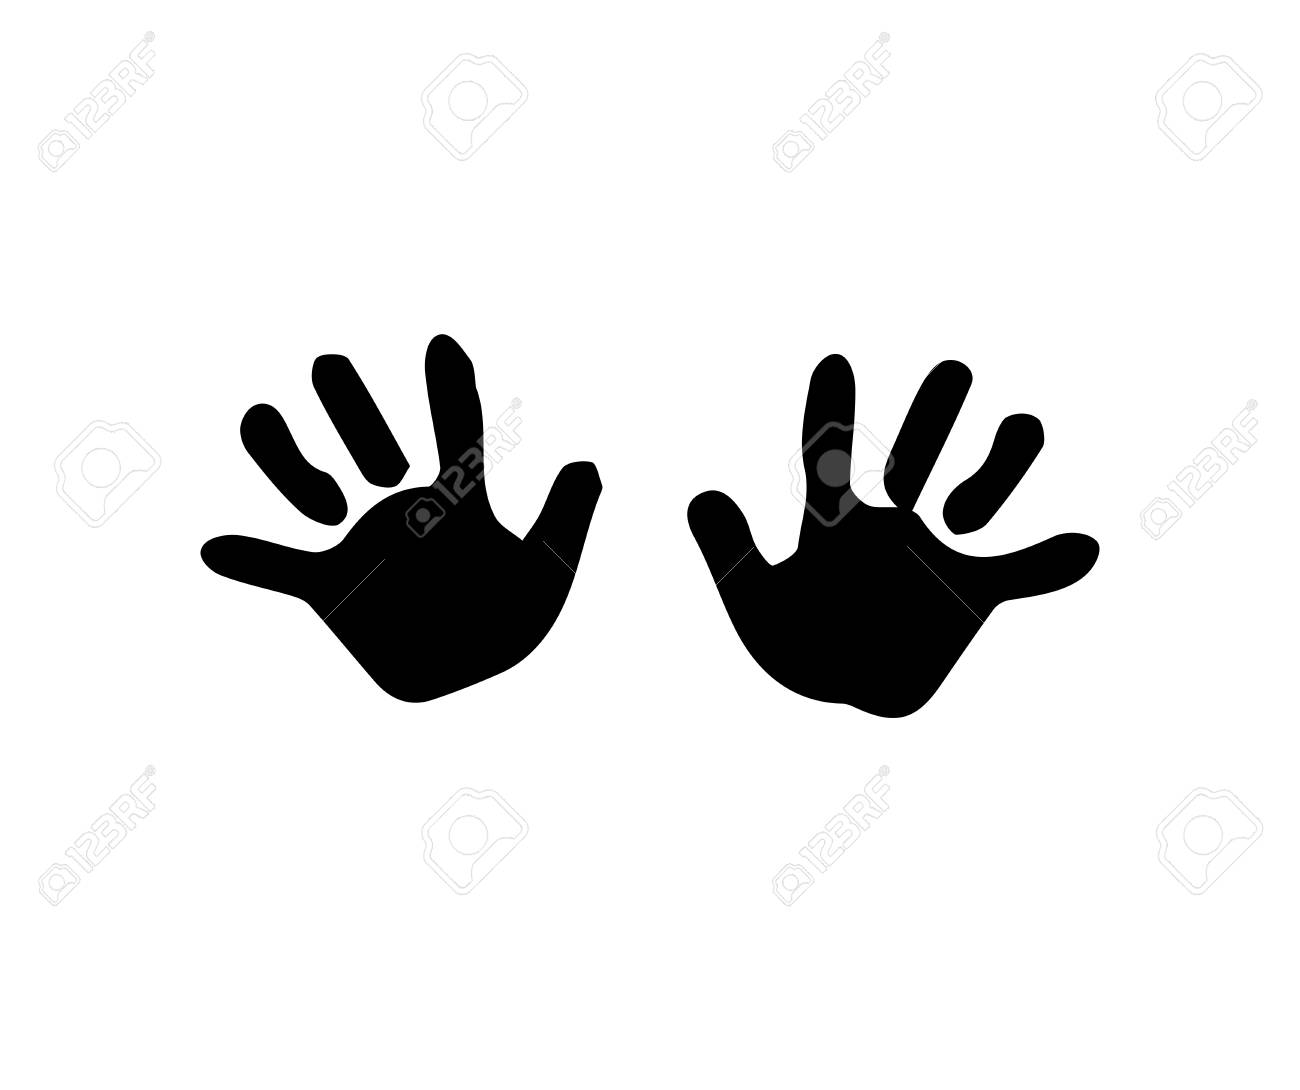 Black silhouette of baby hand prints isolated on white background.